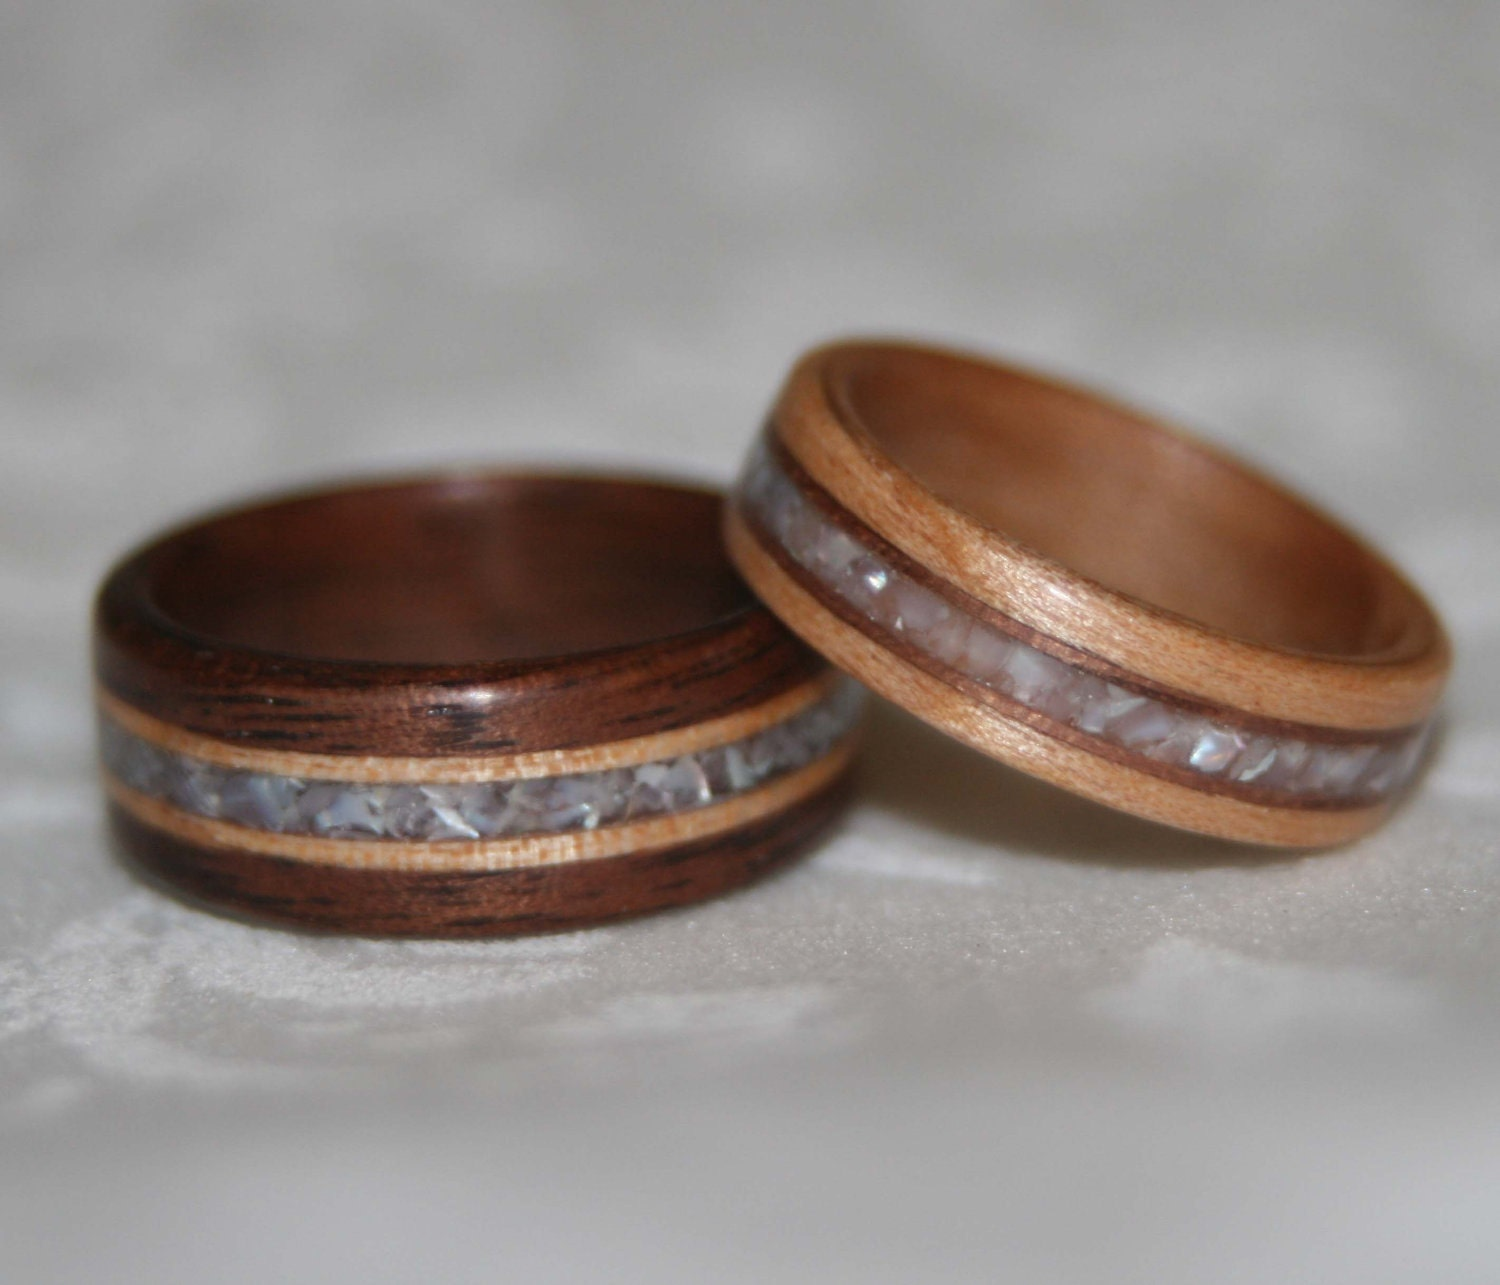 Wooden Wedding Rings: Wood Wedding Rings Using The Custom Woods And By MnMWoodworks